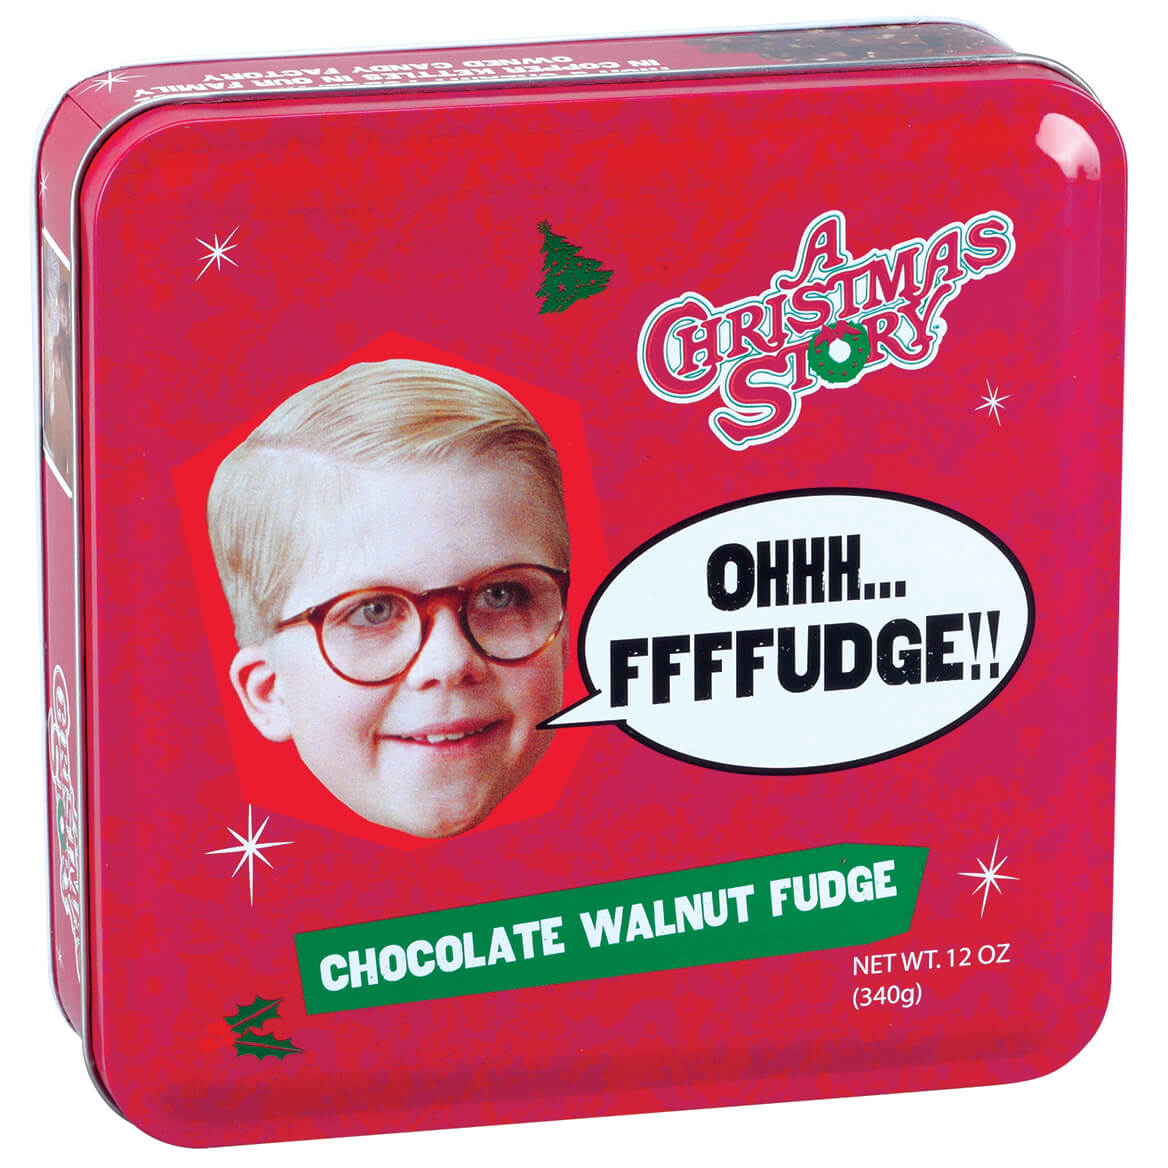 A Christmas Story Fudge Tin, Chocolate Walnut, 12oz.-368945